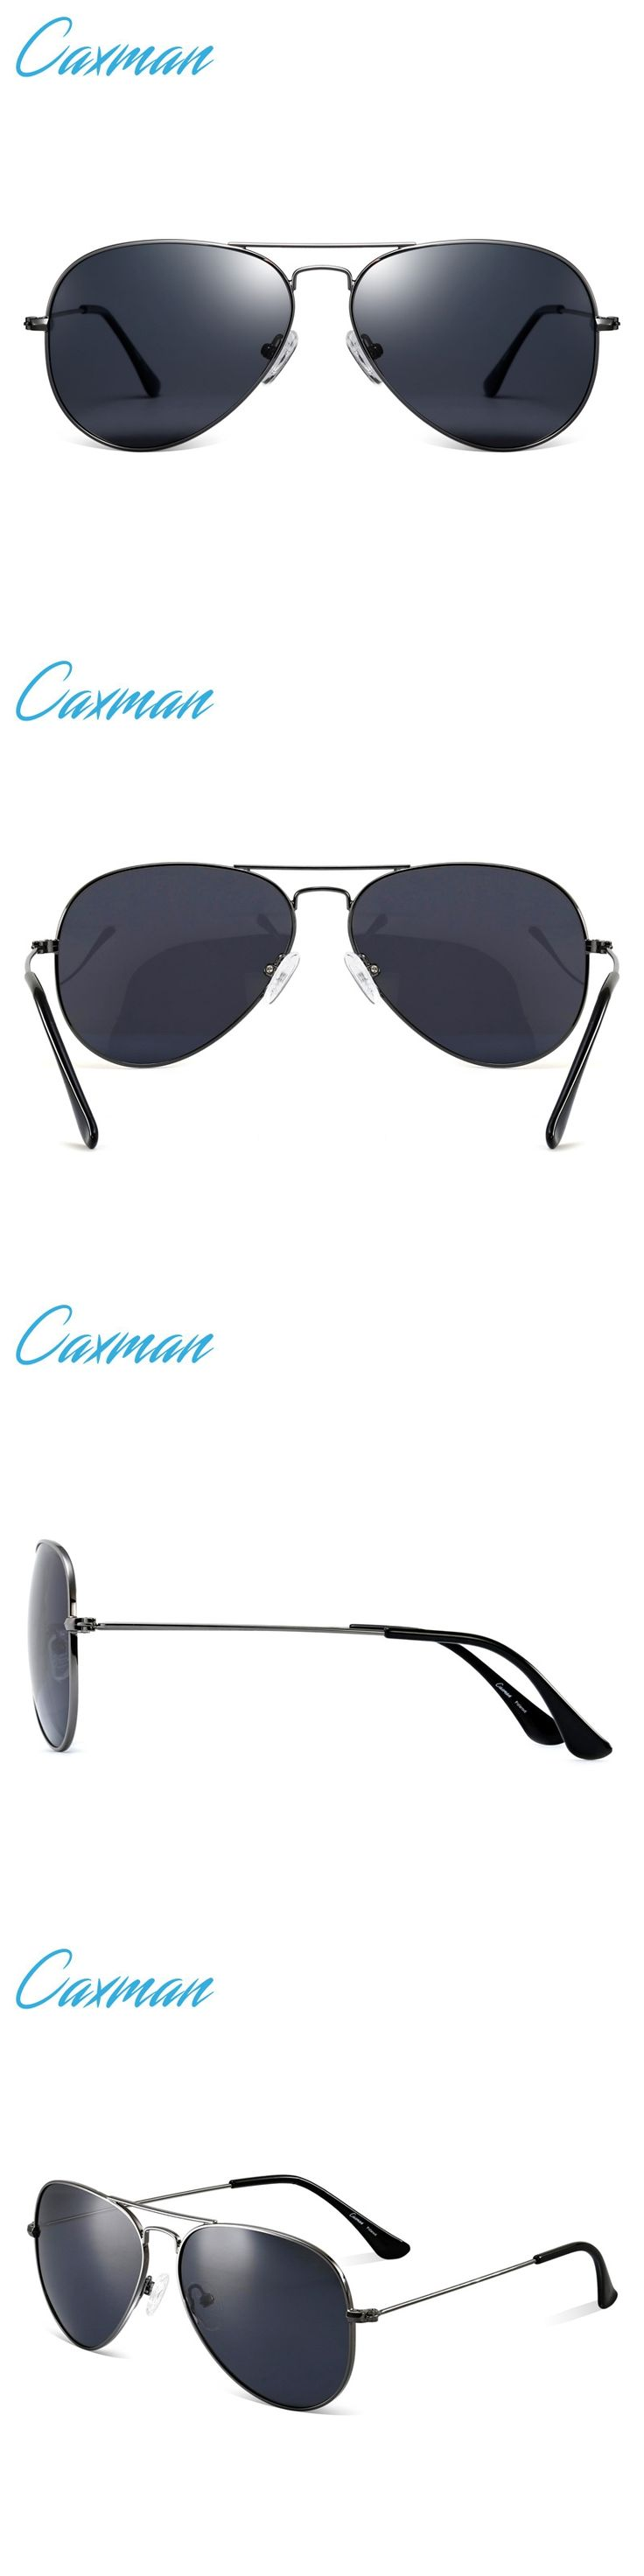 CAXMAN aviator sunglasses oculos aviadores sunglasses for men 2017 vintage retro eyewear glasses